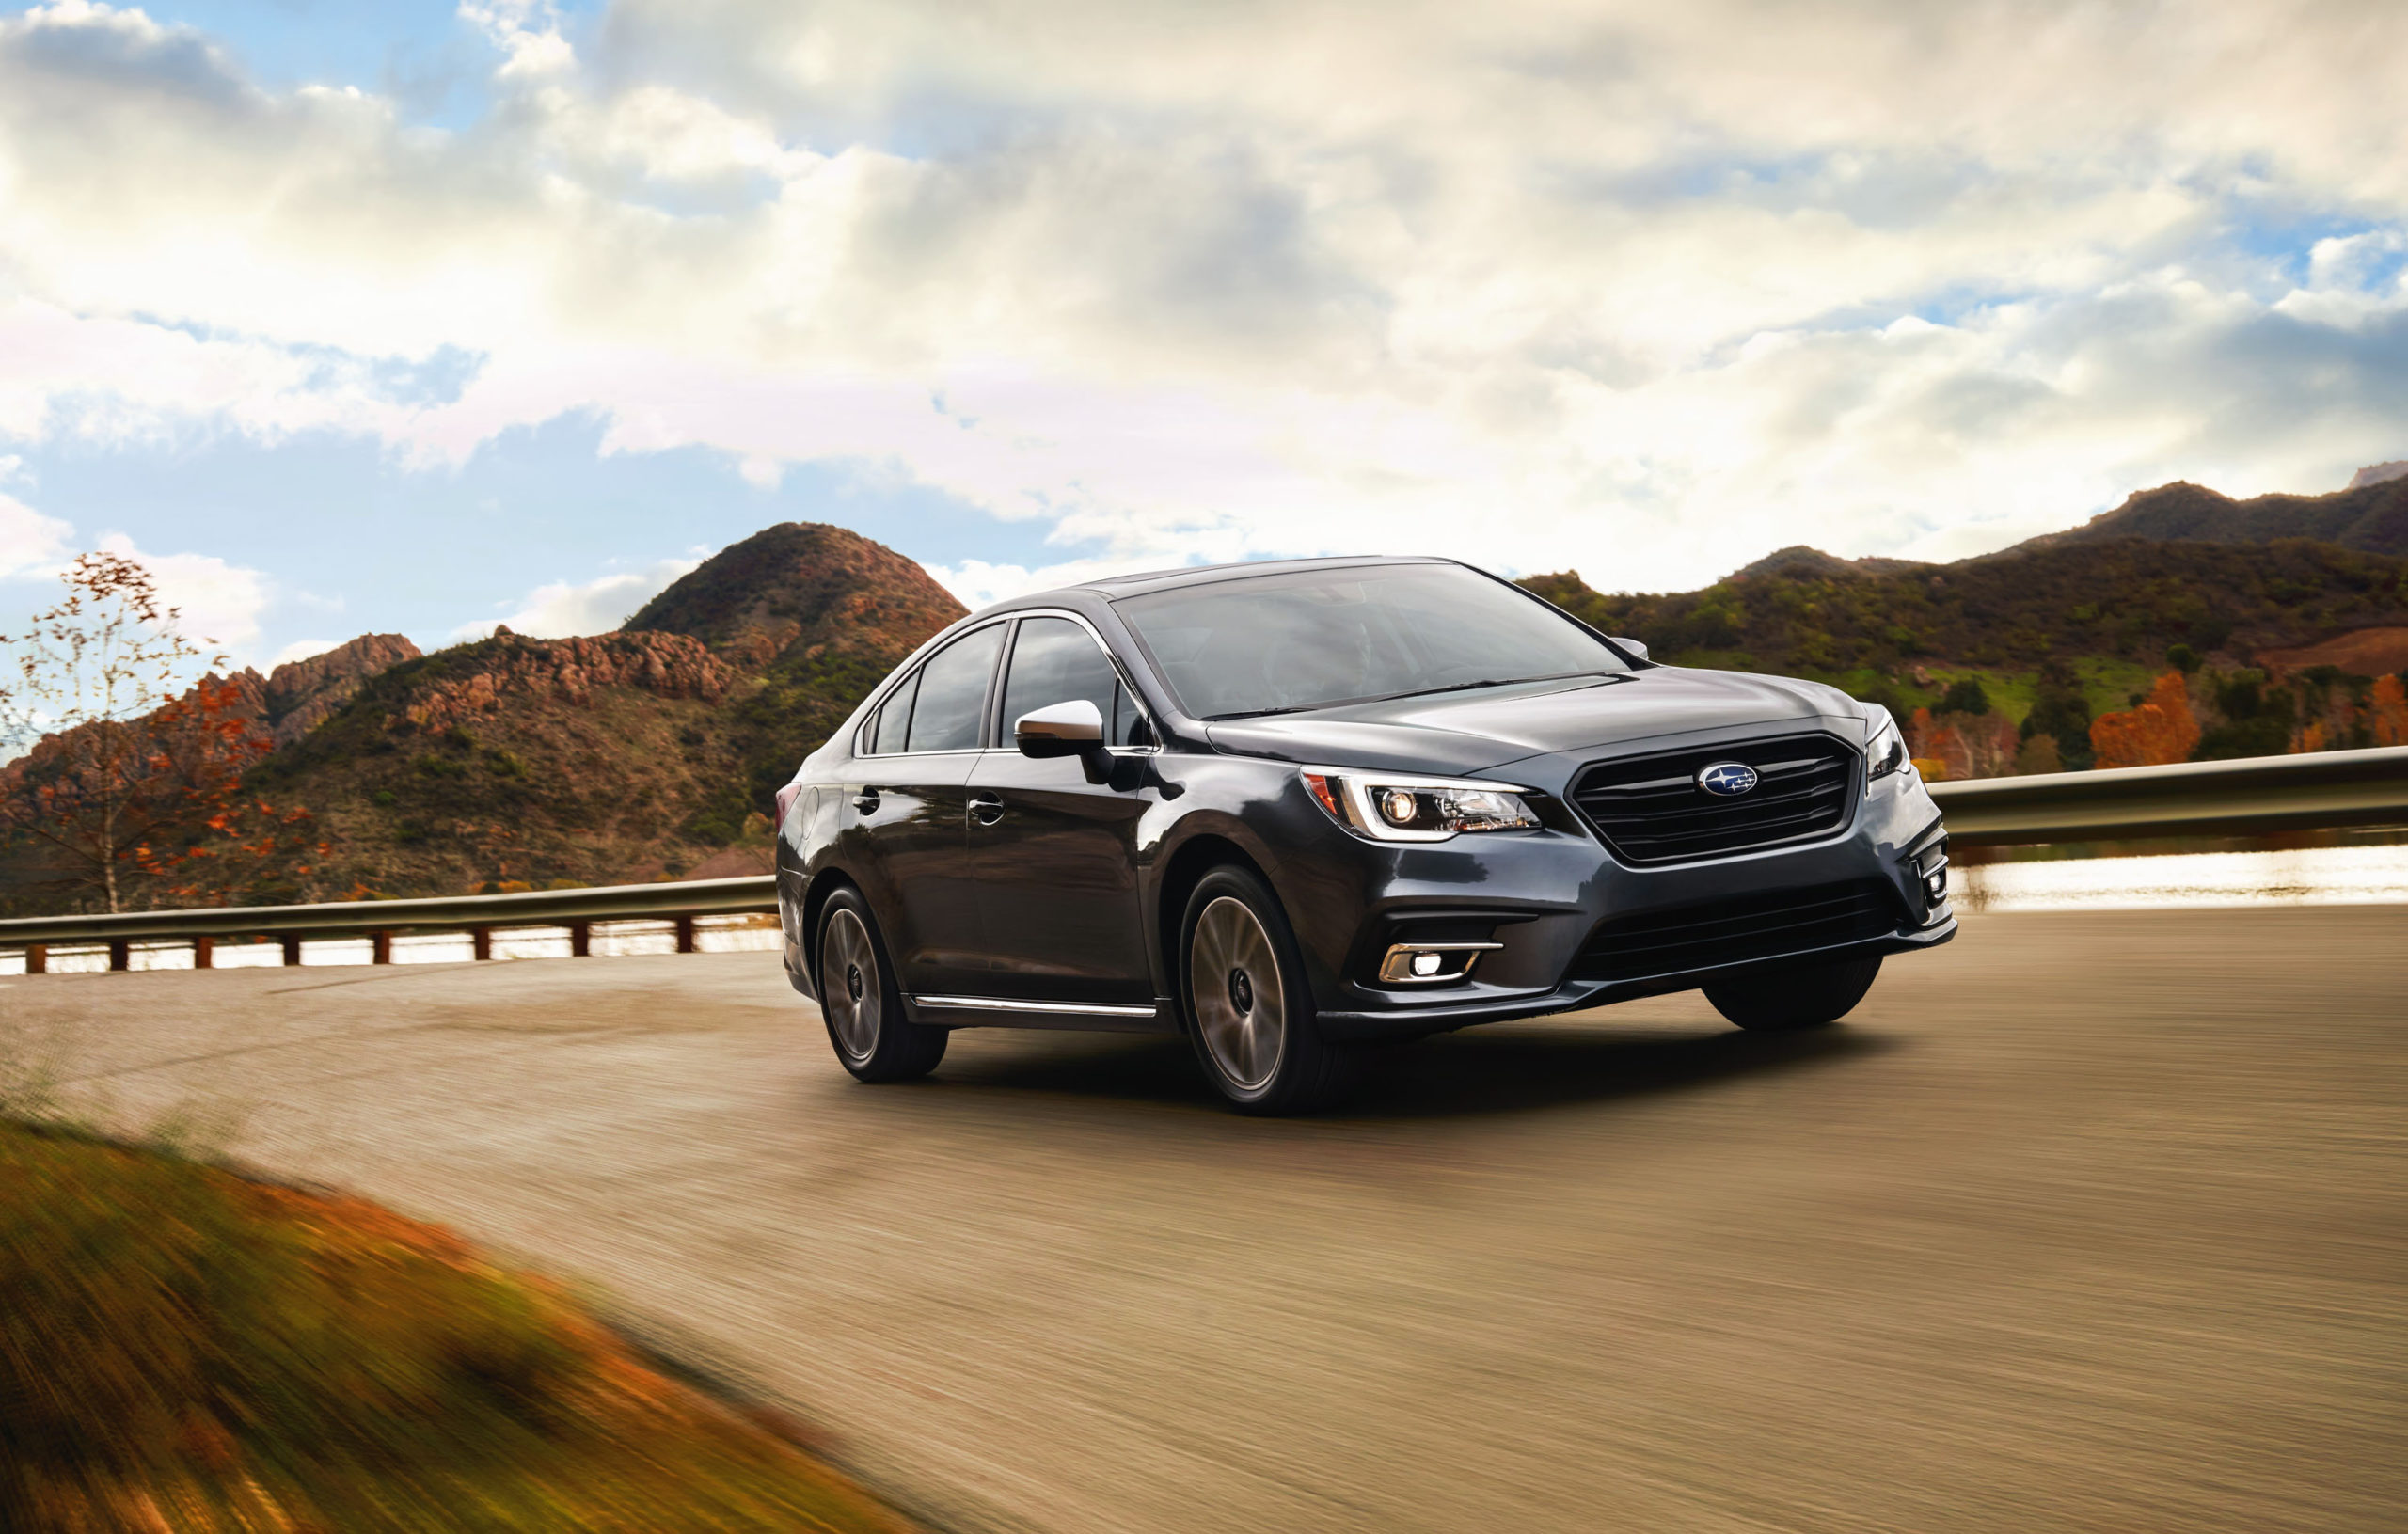 2019 Subaru Legacy Review, Ratings, Specs, Prices, And - 2019 Subaru Legacy Owners Manual